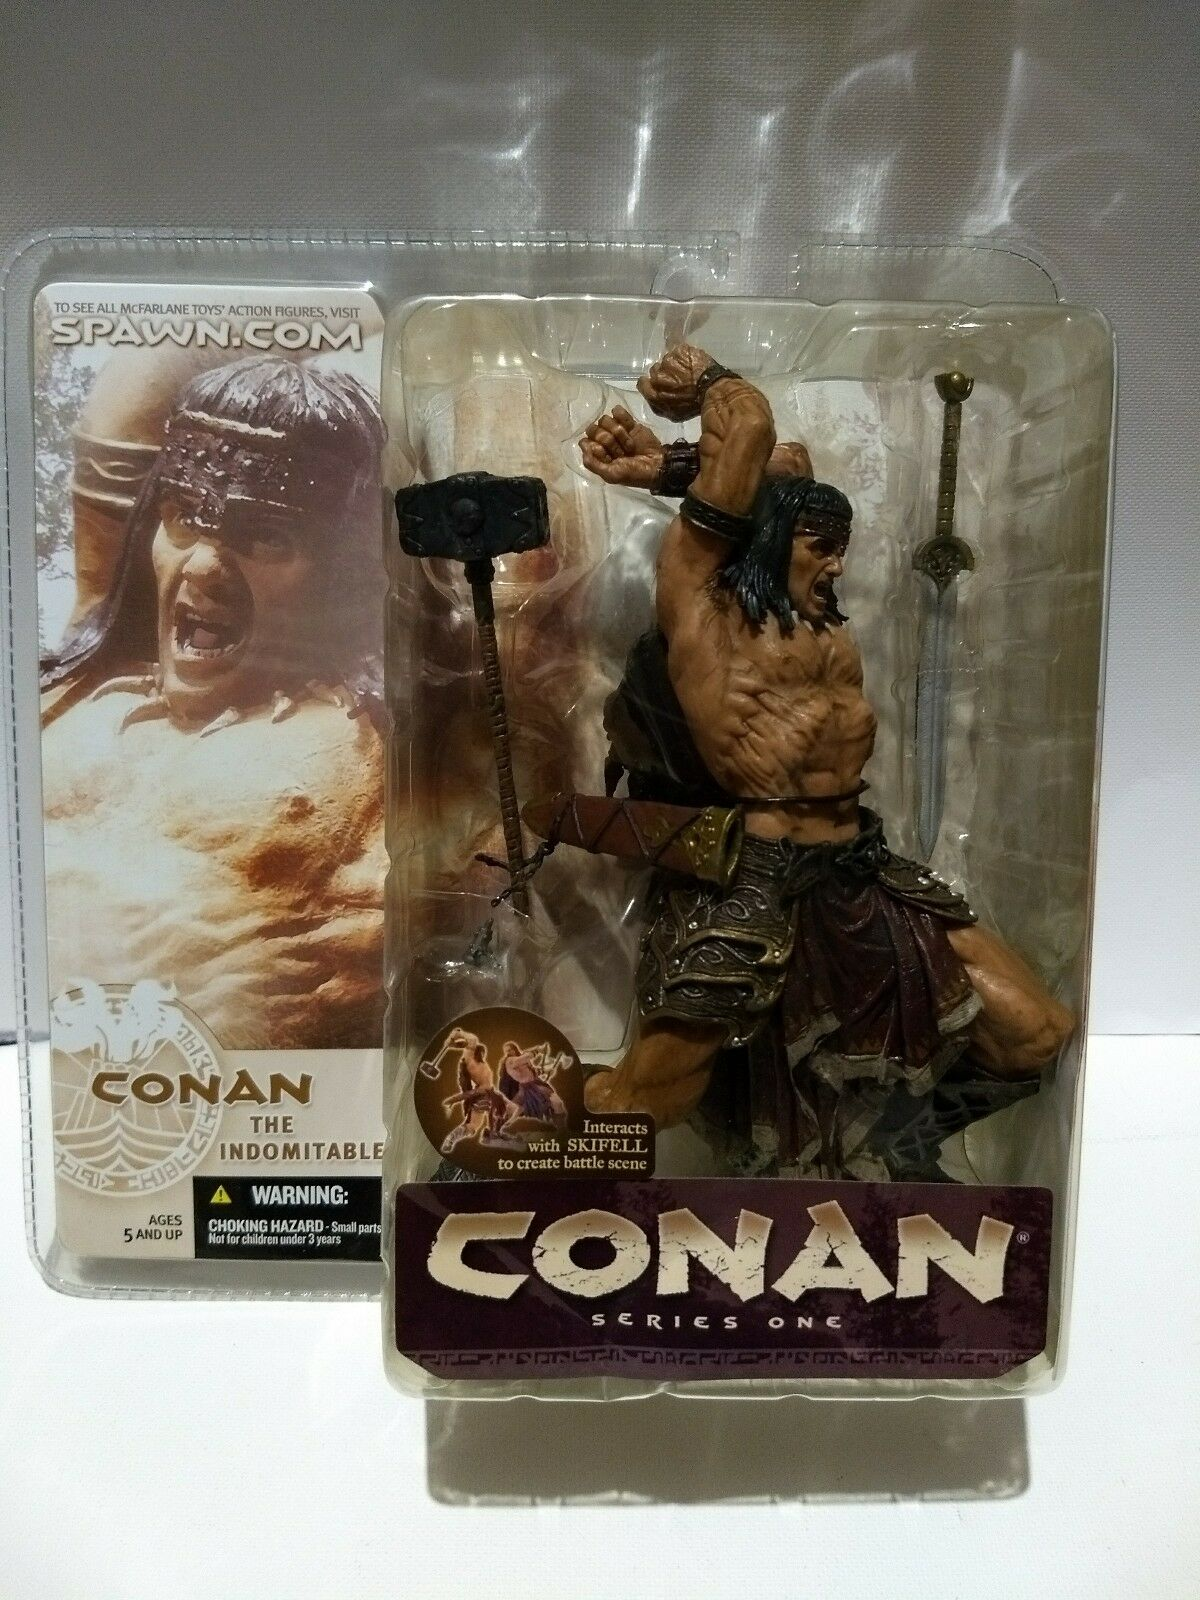 CONAN  The Indomitable- Series One (2004)McFARLANE TOY'S.